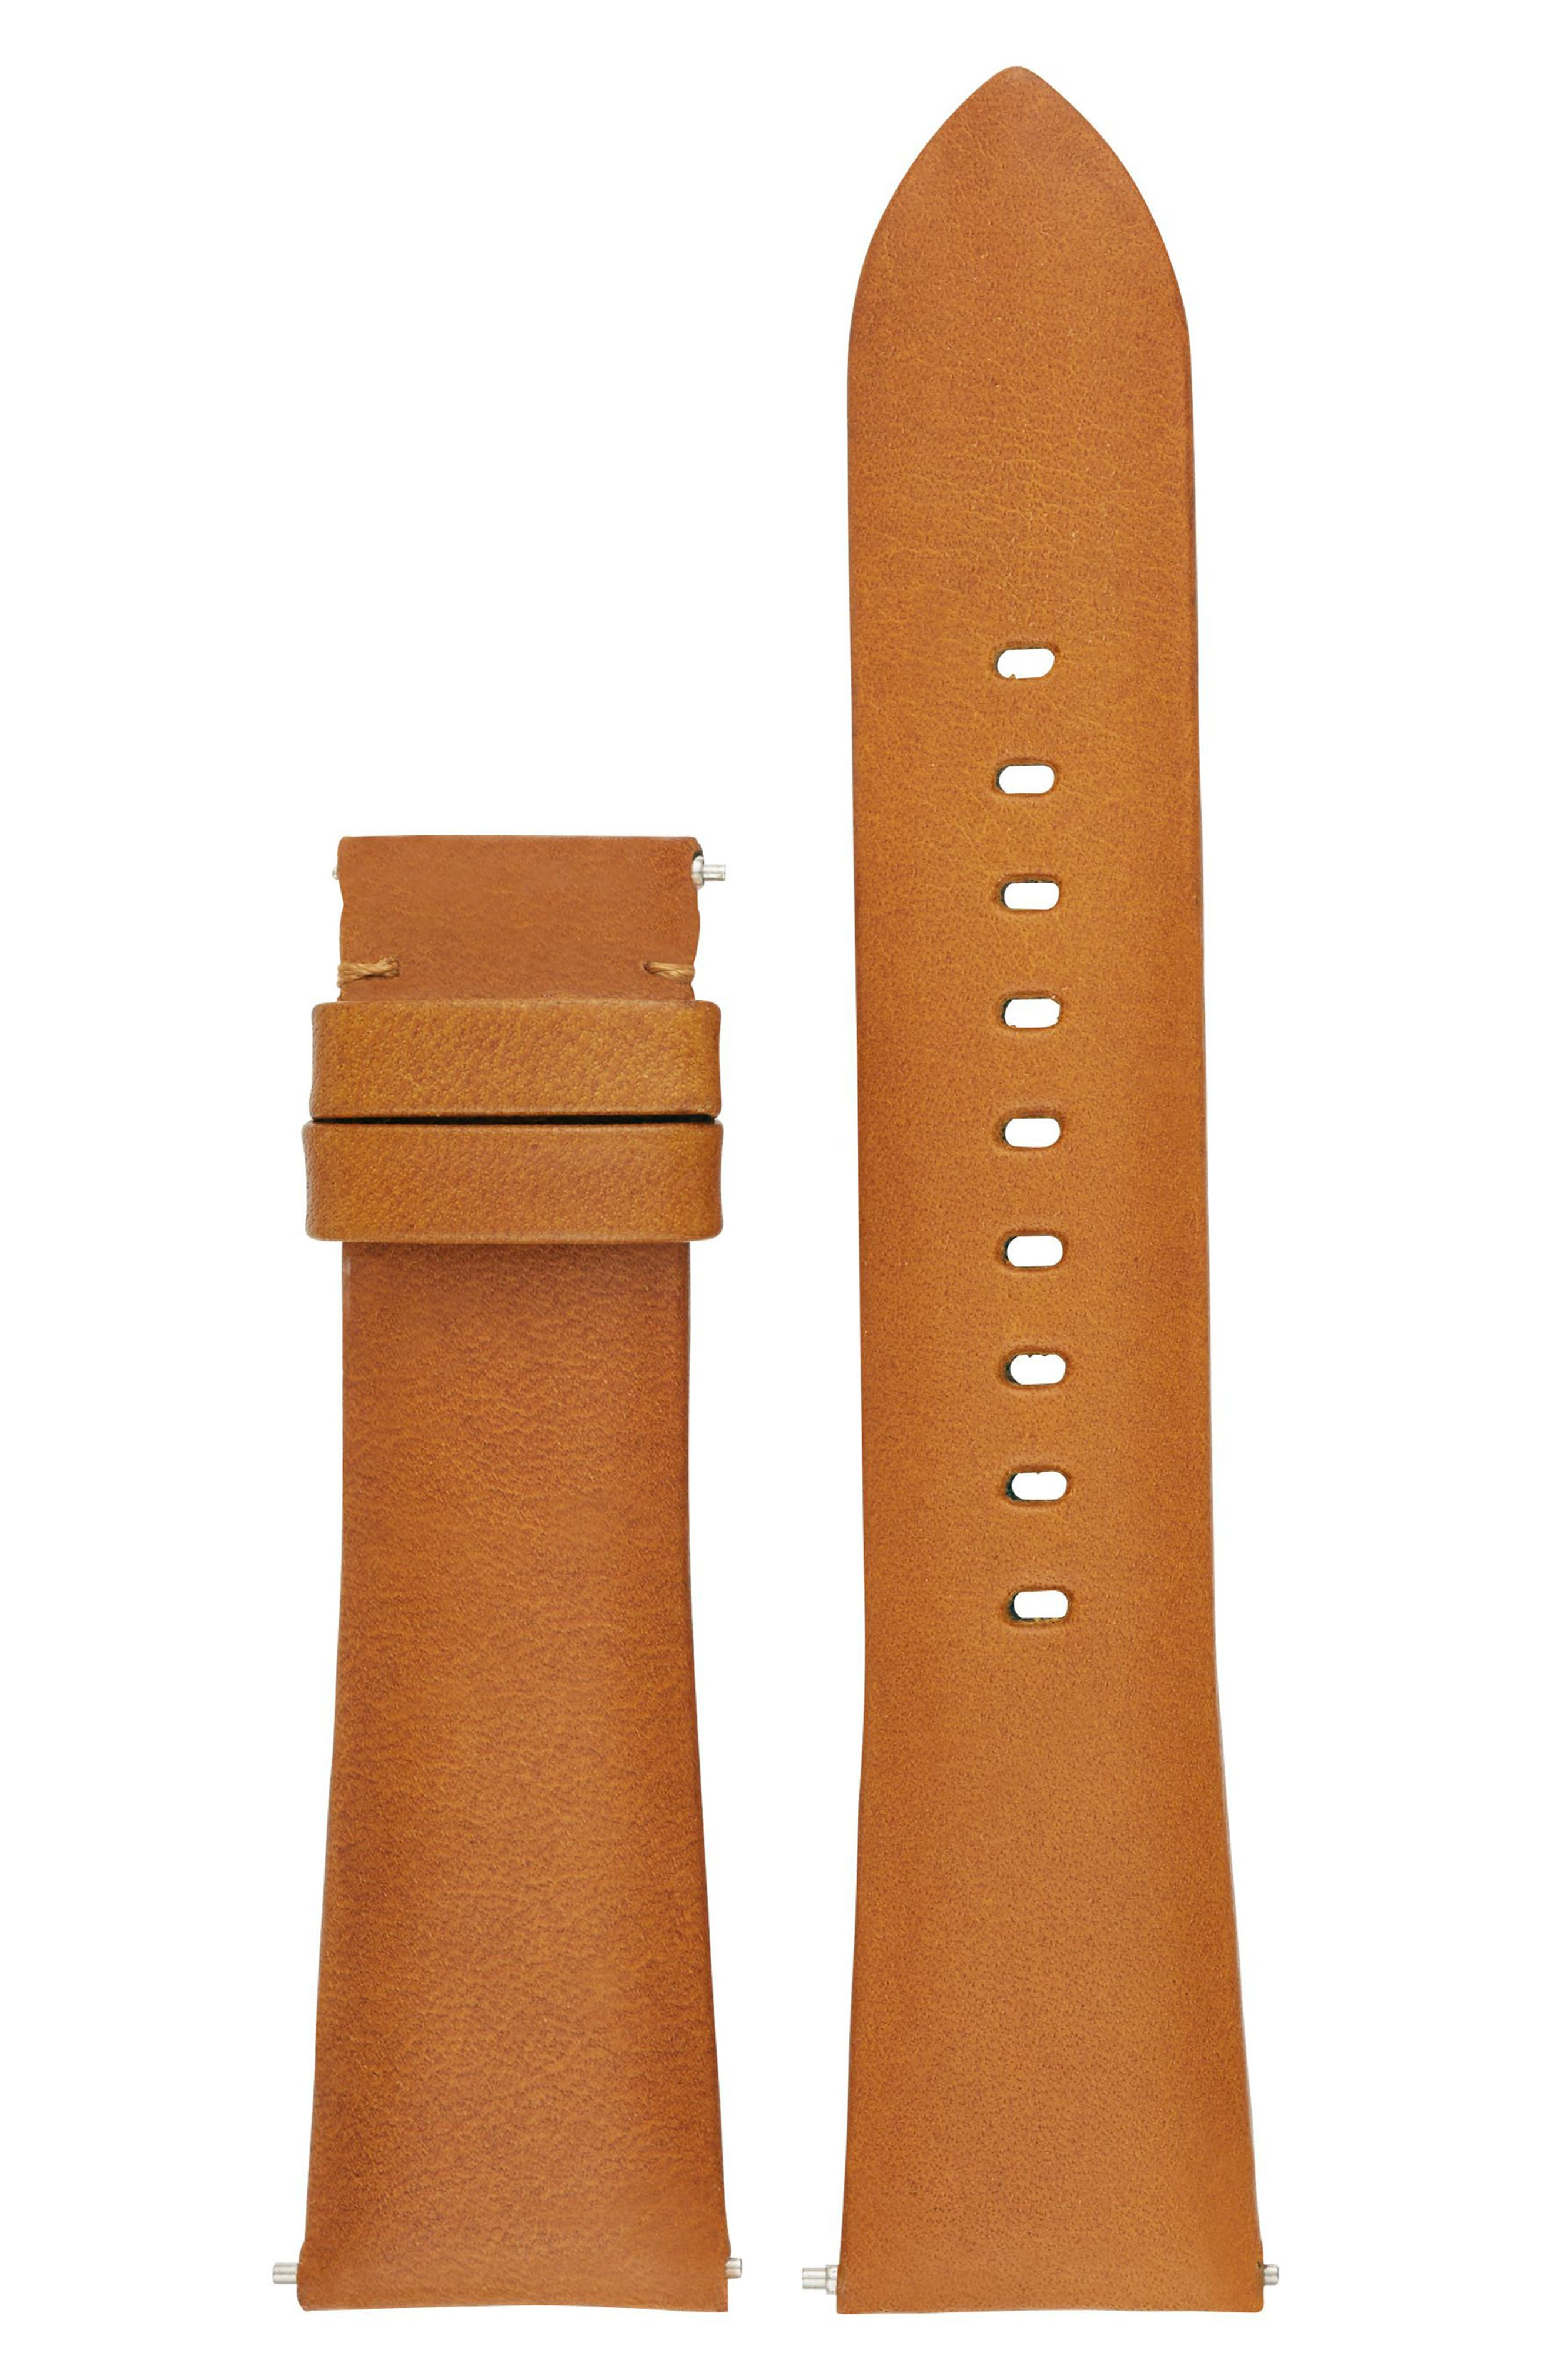 Michael Kors Bradshaw Interchangeable Leather Strap